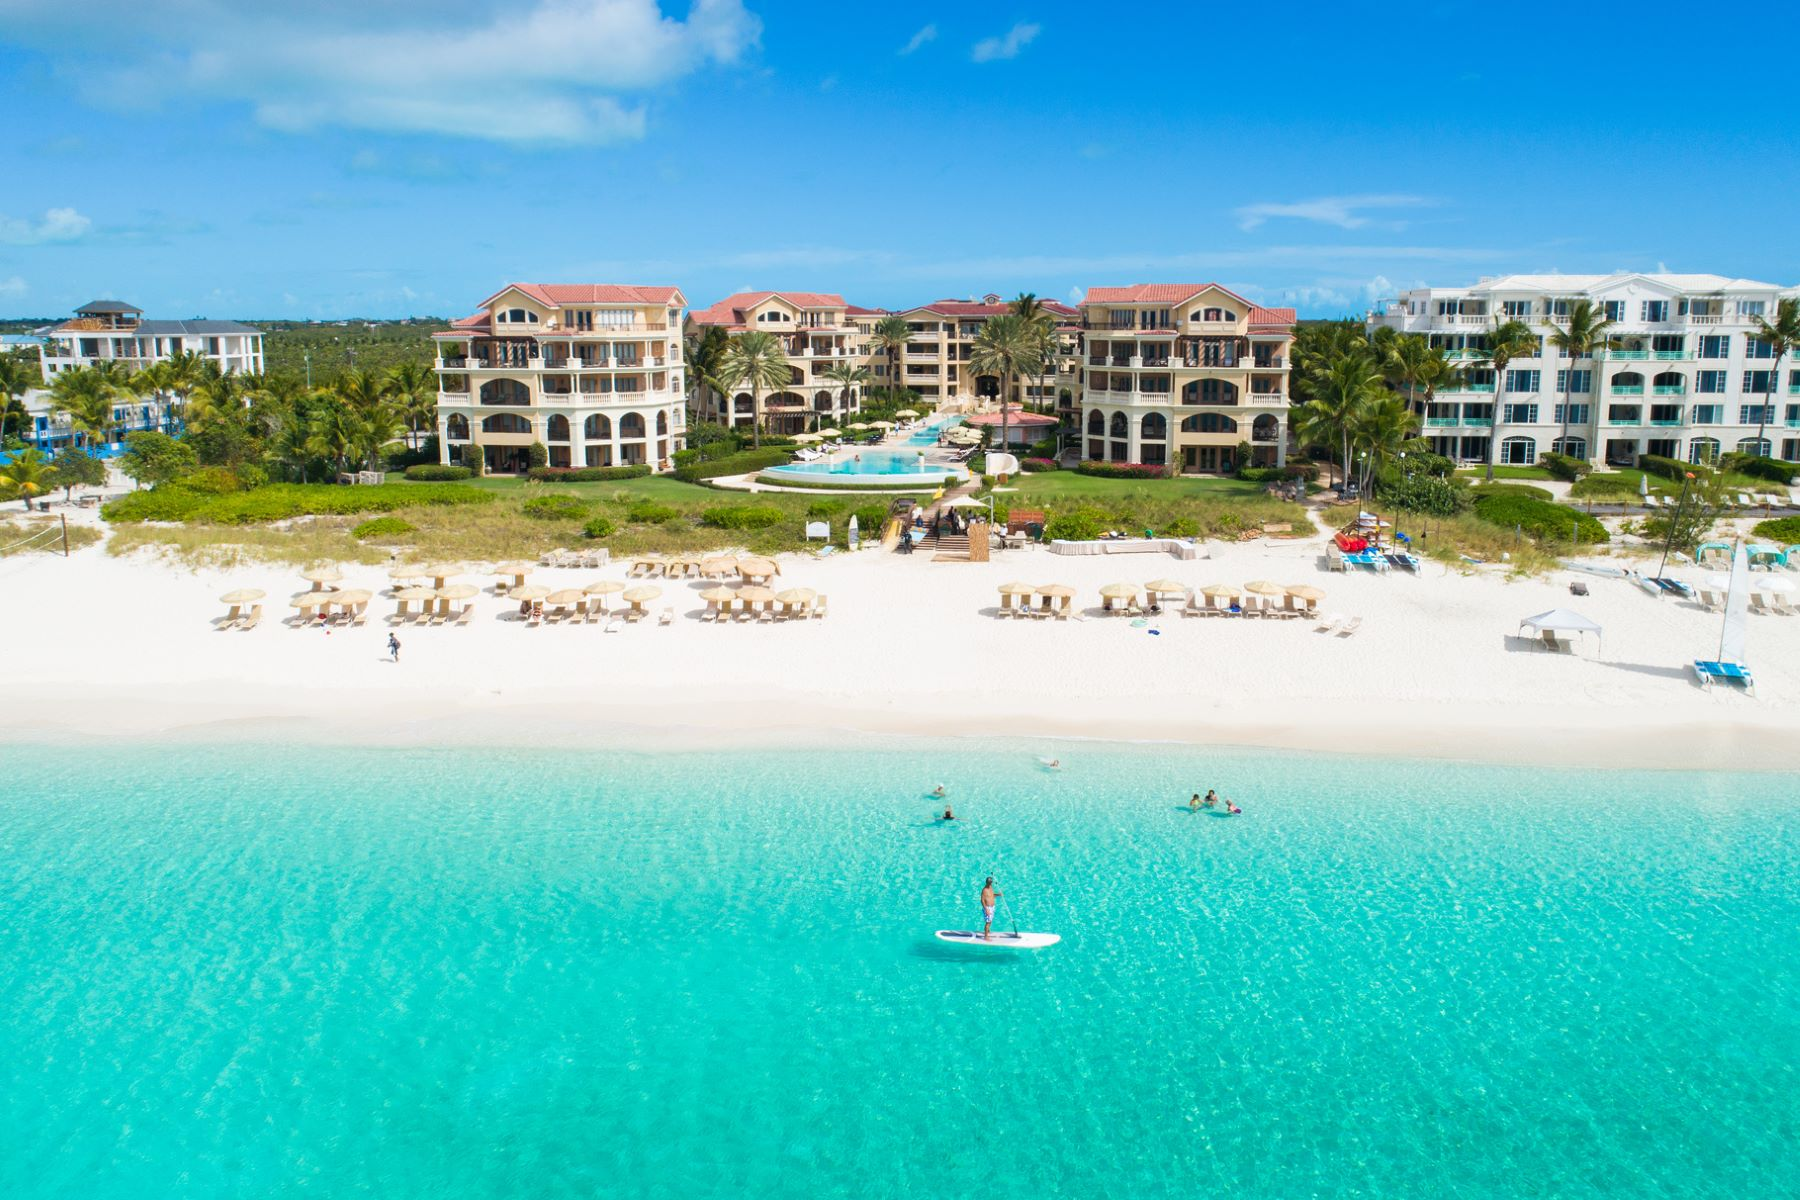 Condominium for Sale at The Somerset B101 Beachfront The Somerset B101 Grace Bay, Providenciales TKCA 1ZZ Turks And Caicos Islands